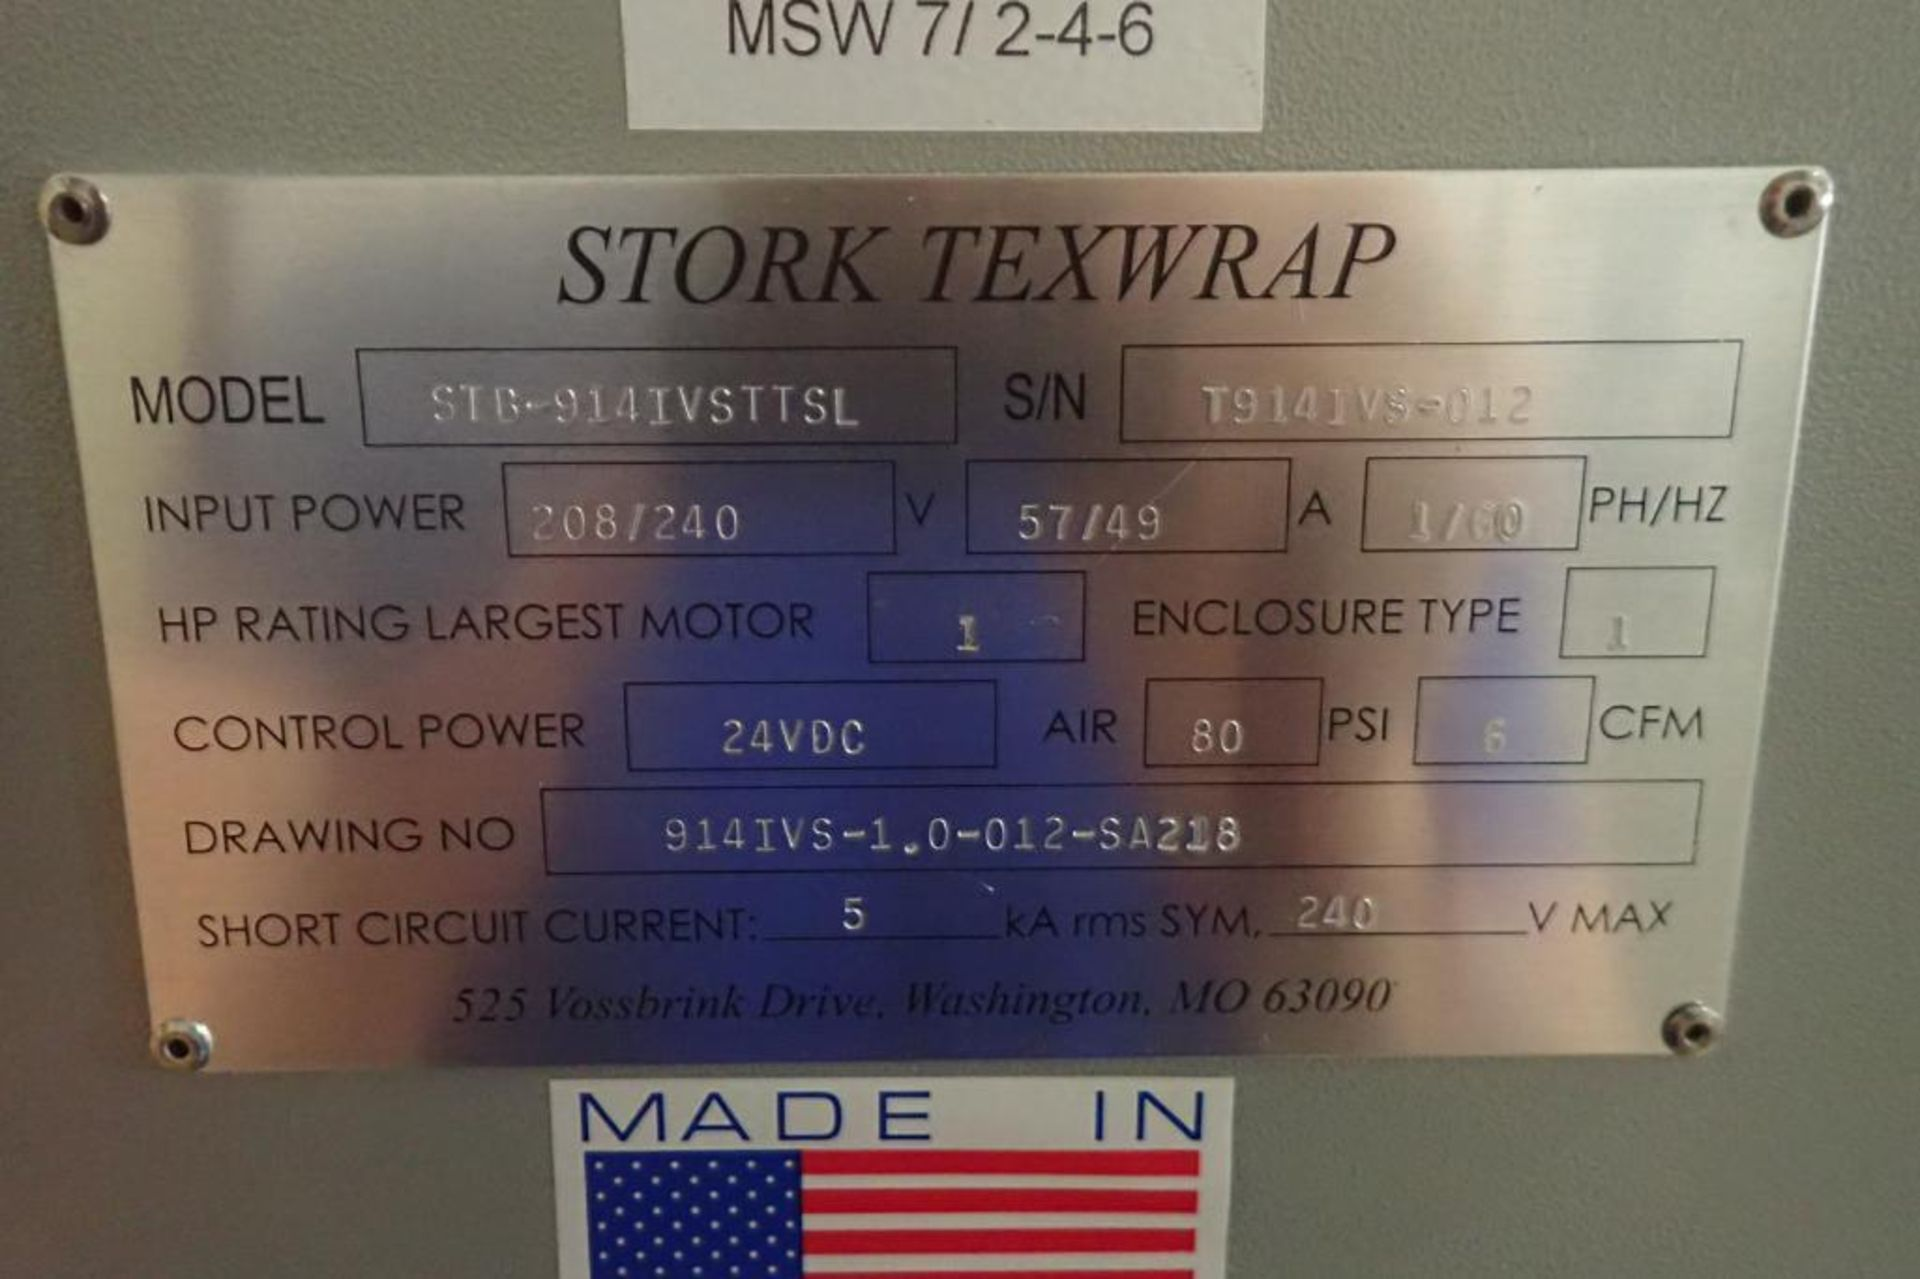 Lot 29 - Stork texwrap TTS-TVS over-wrapper, Model STB-914IVSTTSL, T914IVS-012, 16 in. tall vertical seal